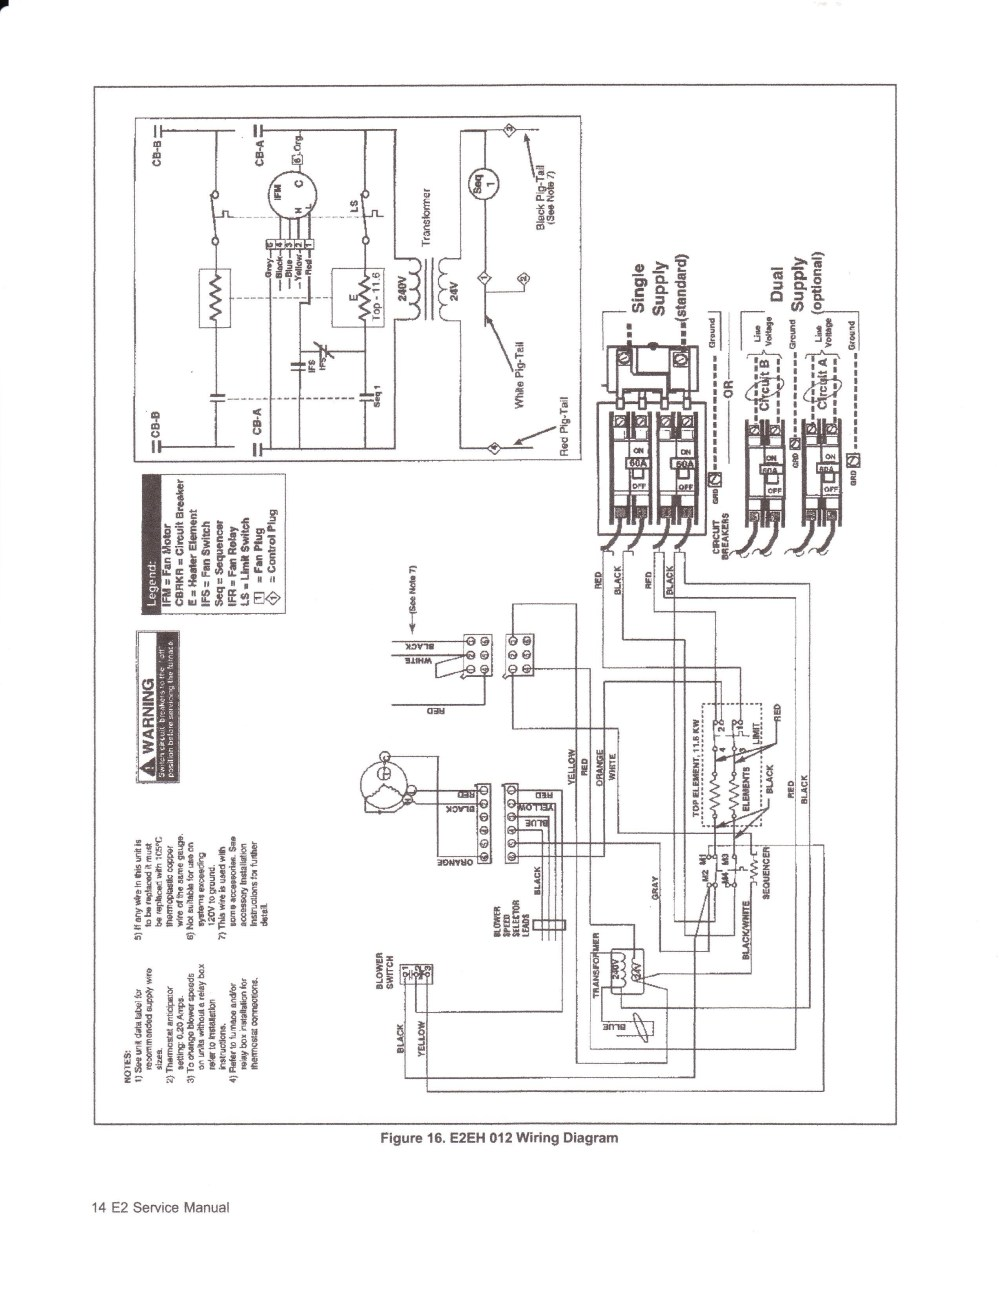 medium resolution of wiring diagram along with mobile home nordyne furnace wiring diagram rh sellfie co